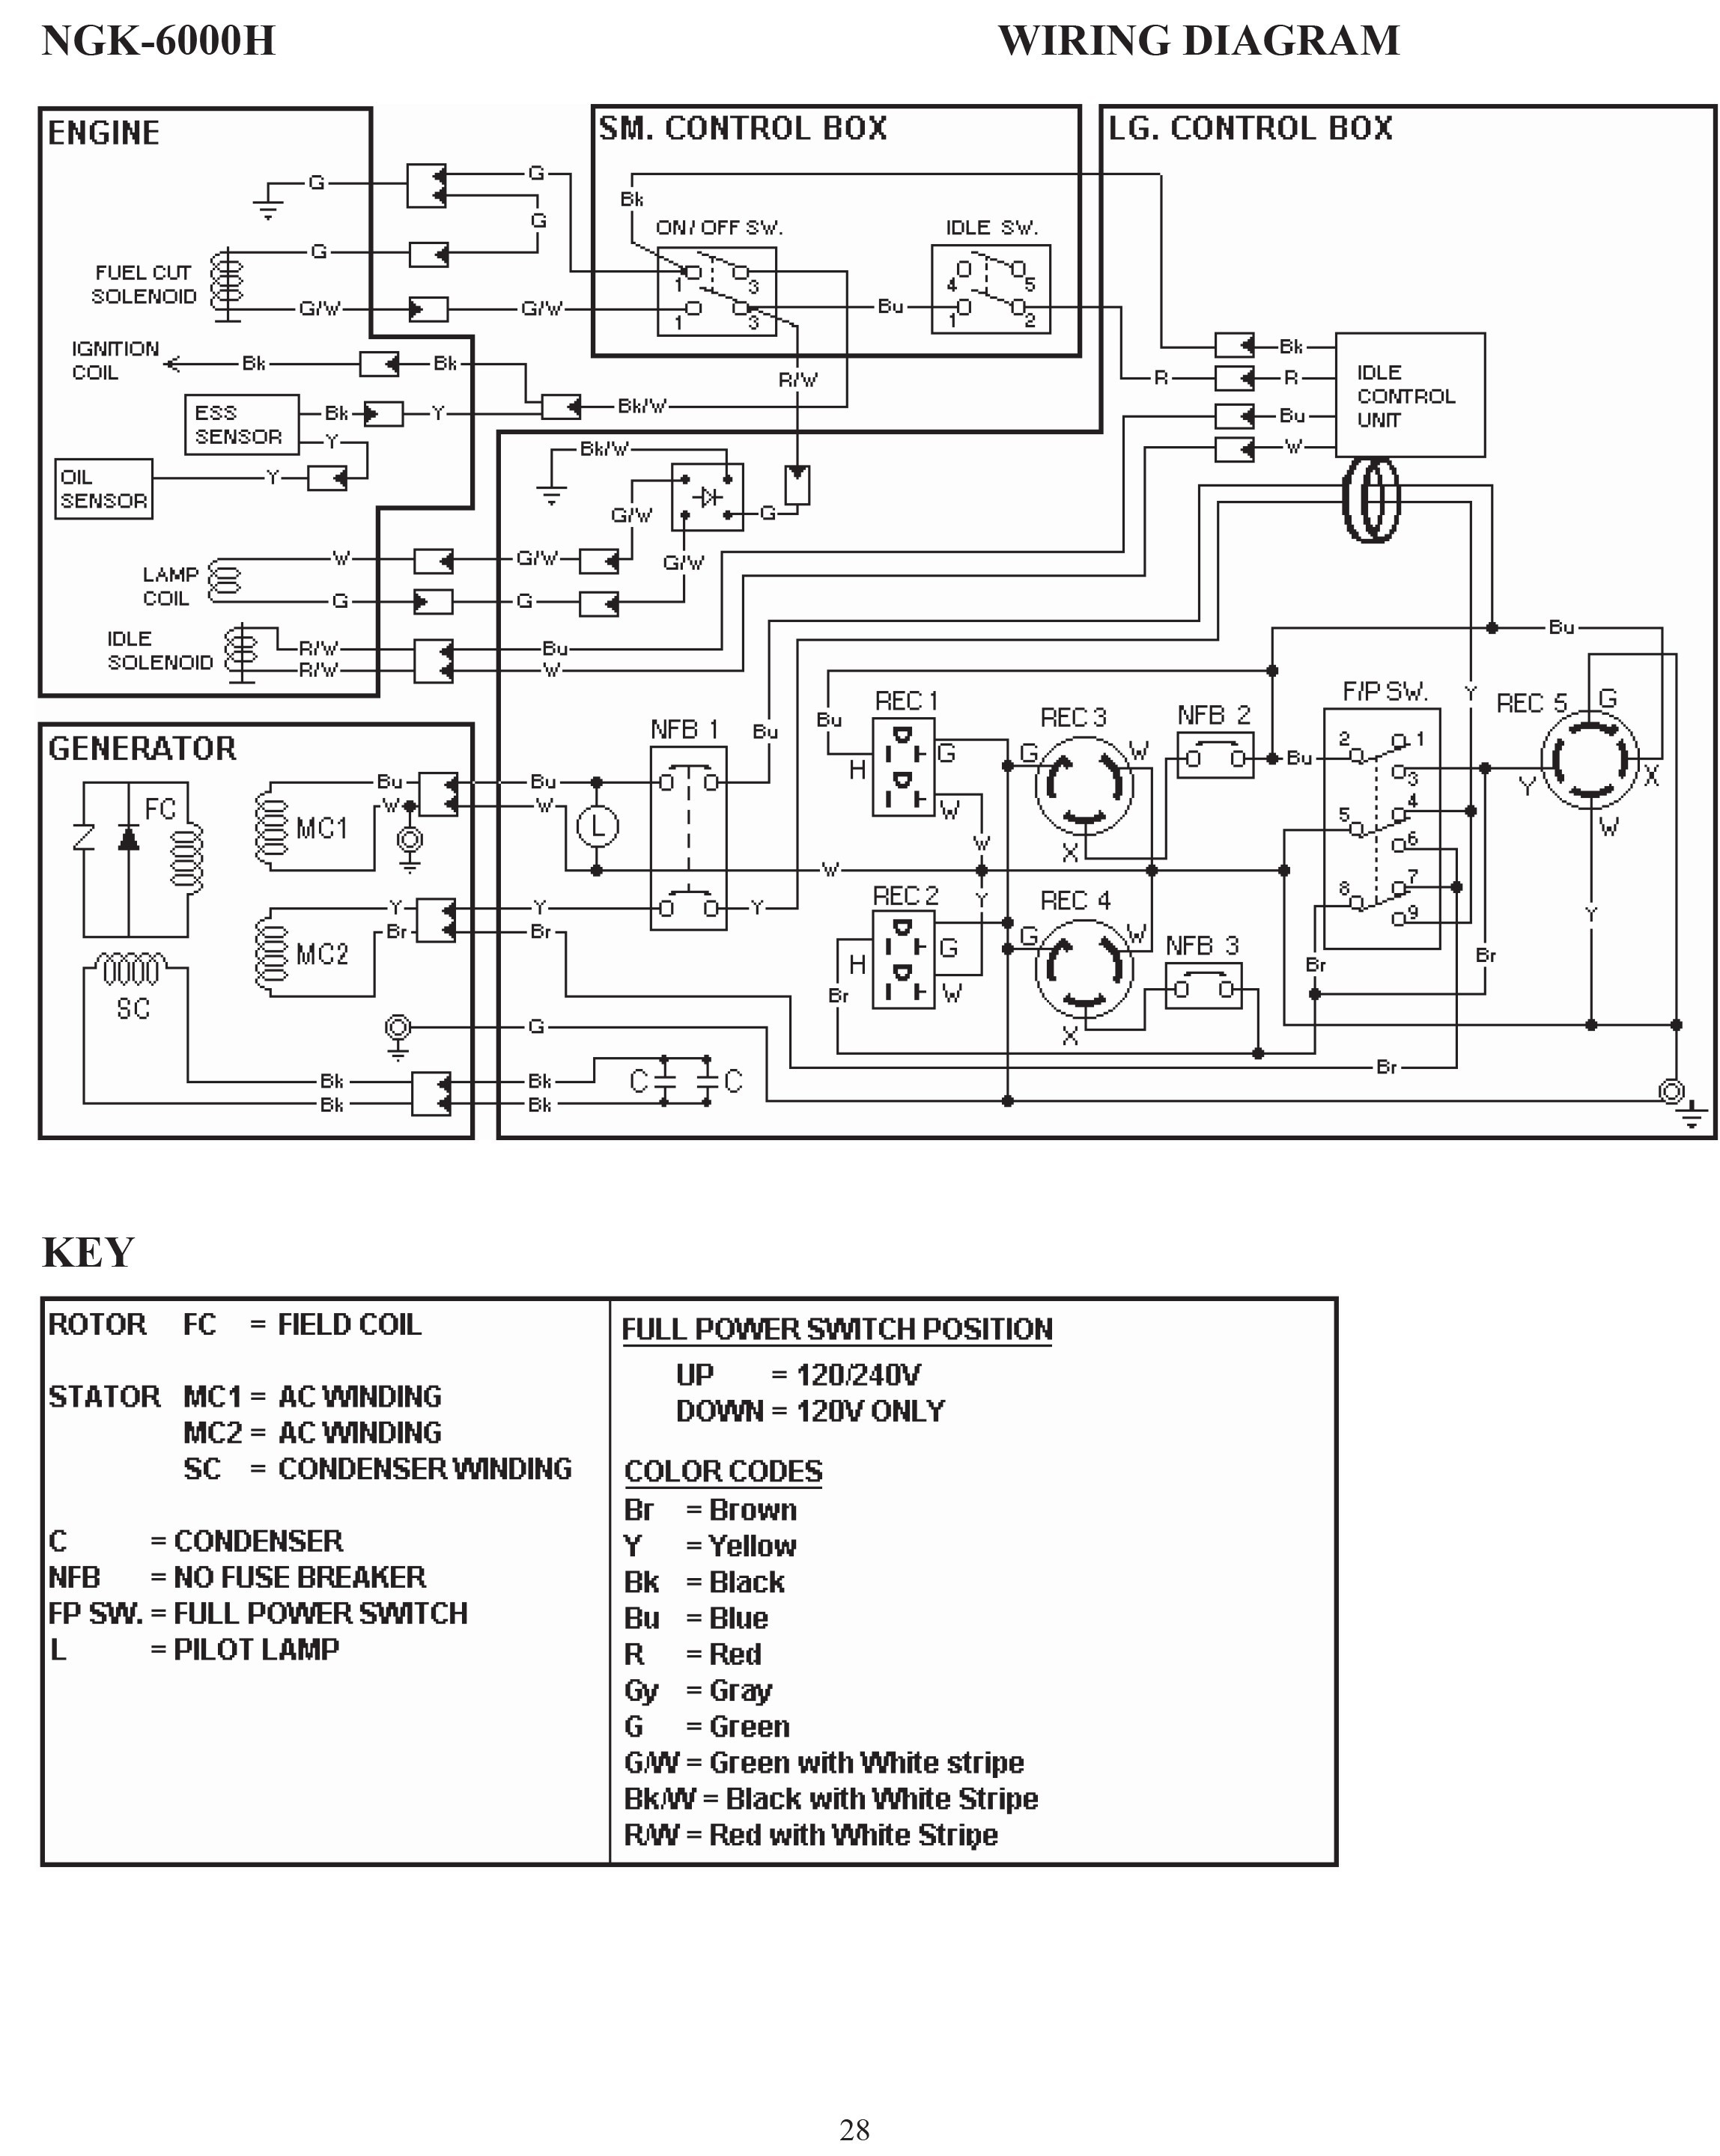 Us Motor Wiring Diagram - Wiring Diagram Fascinating on